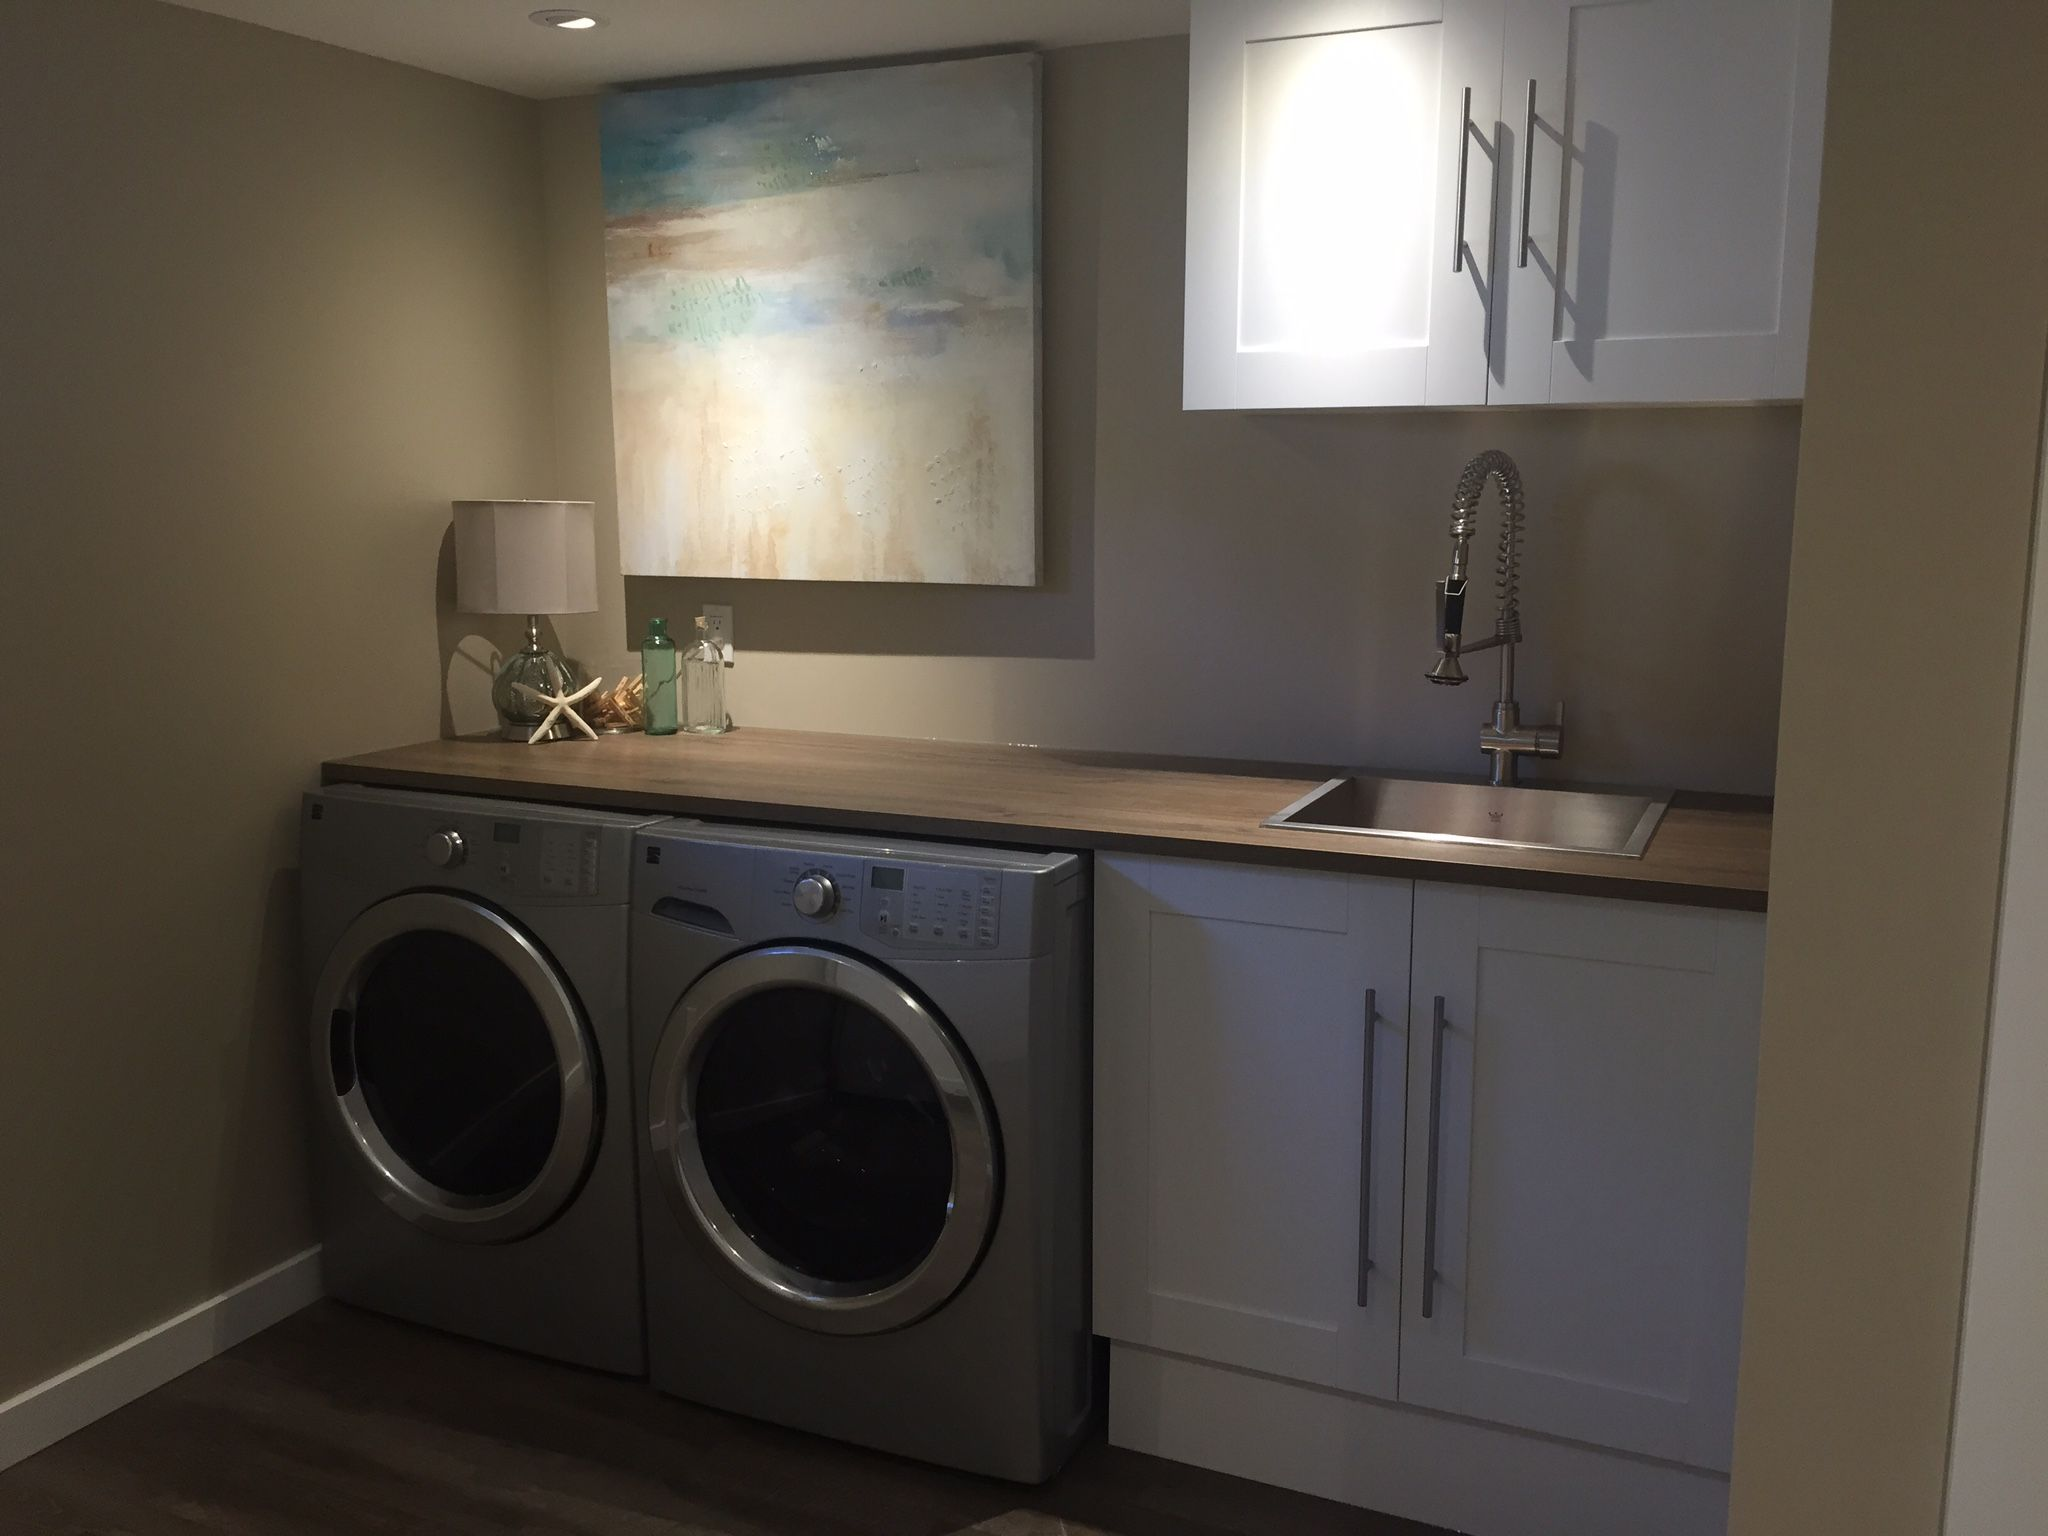 laundry room hide electrical panel behind a canvas. Black Bedroom Furniture Sets. Home Design Ideas